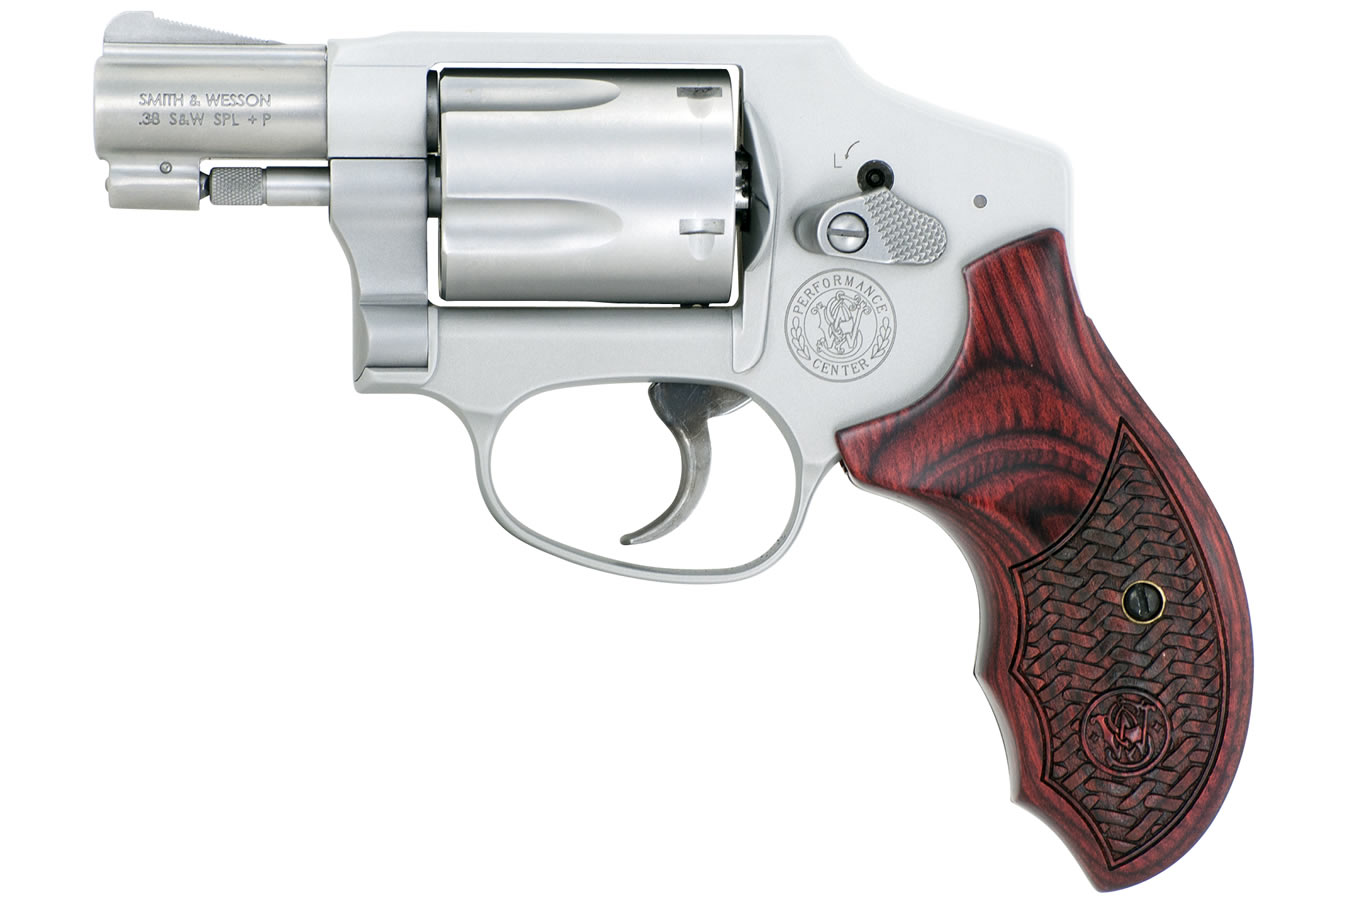 MODEL 642 .38 SPECIAL PERFORMANCE CENTER